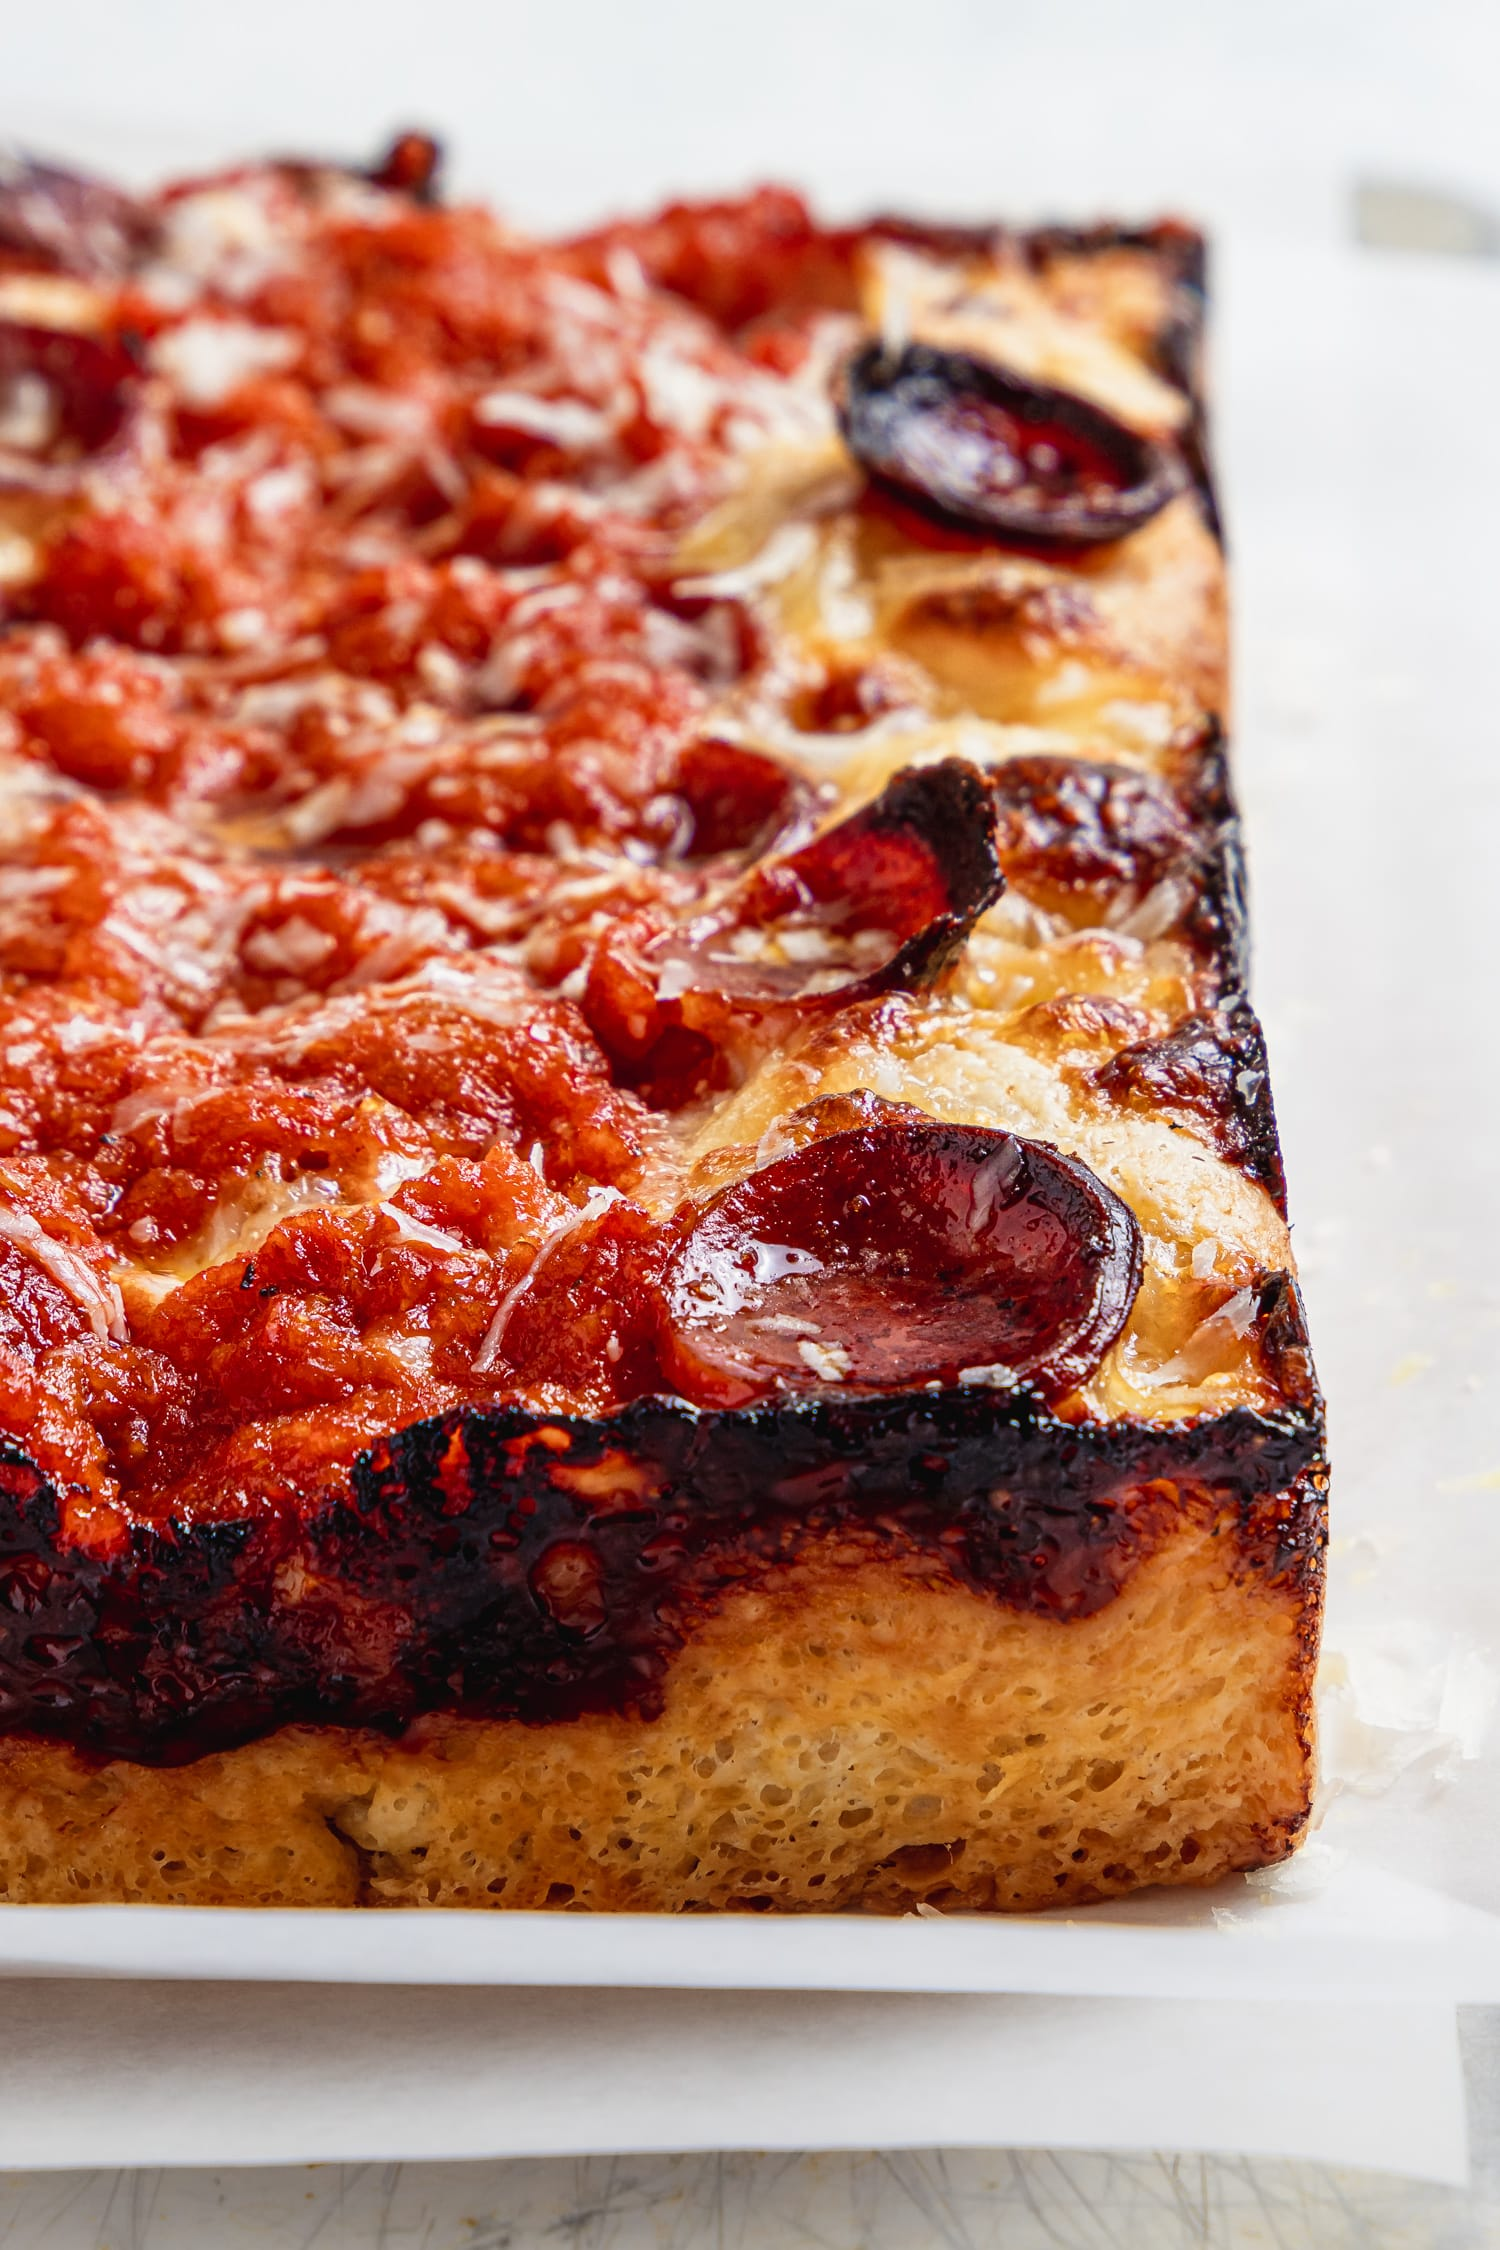 cooked detroit style pepperoni pizza close up